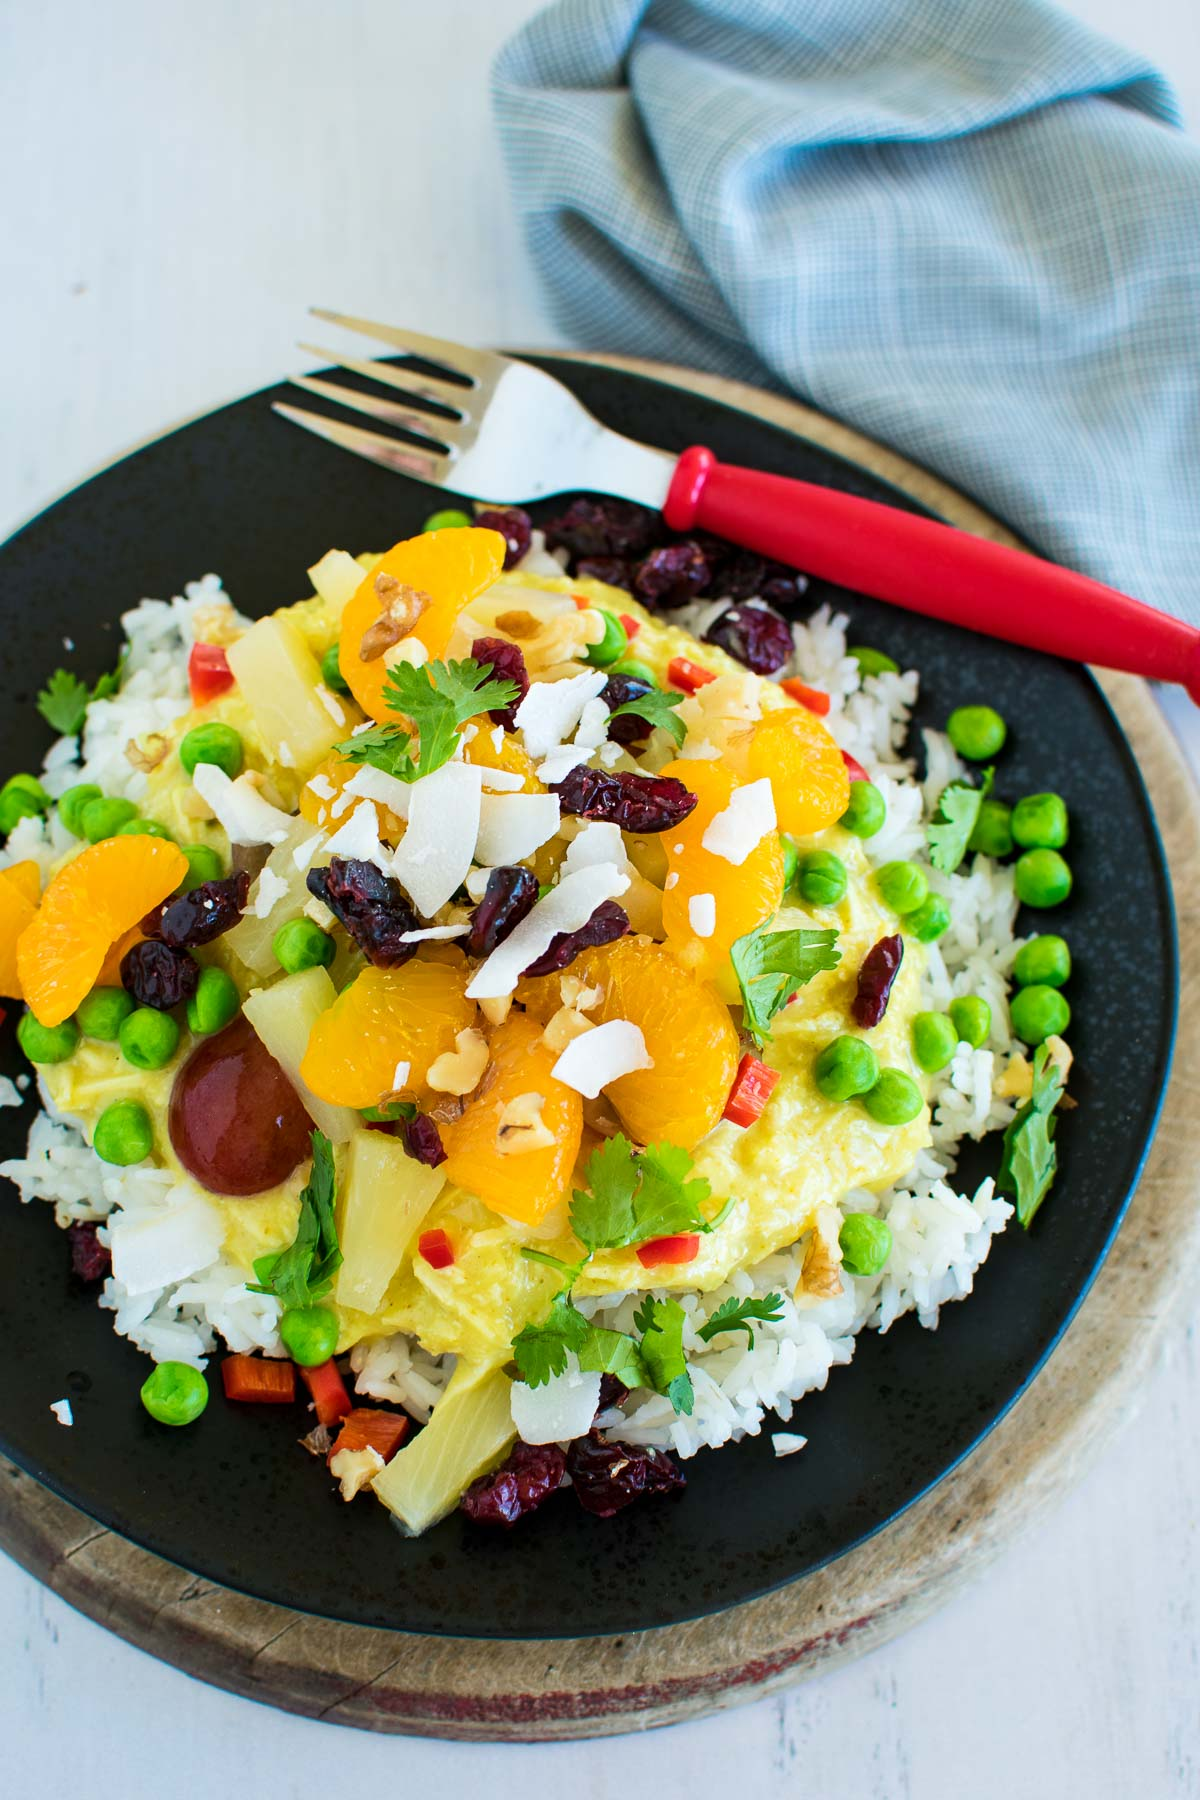 Hawaiian Haystacks recipe with curry, fruit, and veggies like pineapple.